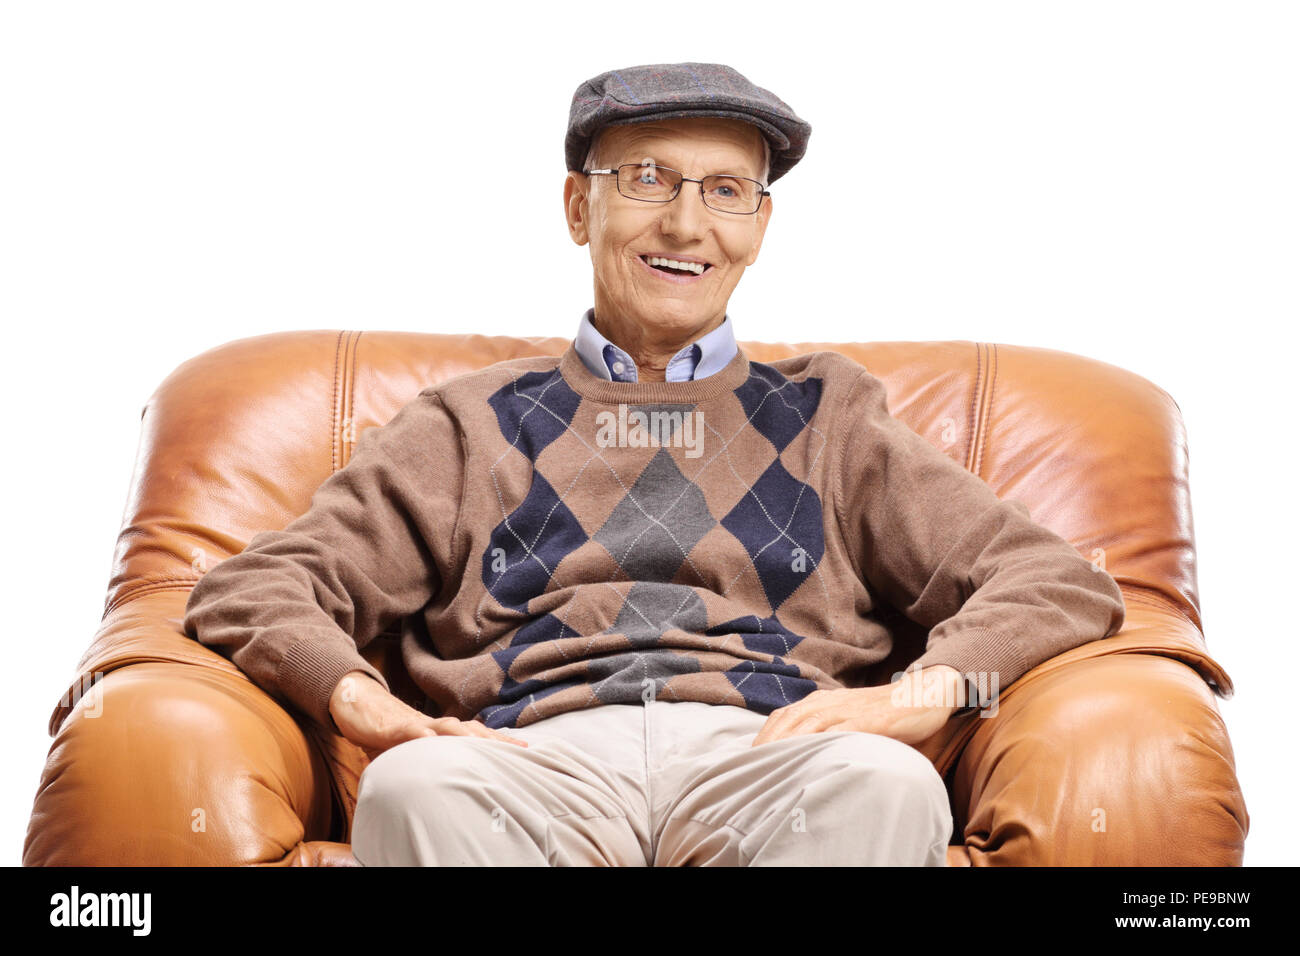 Elderly man sitting in a leather armchair and looking at the camera isolated on white background - Stock Image